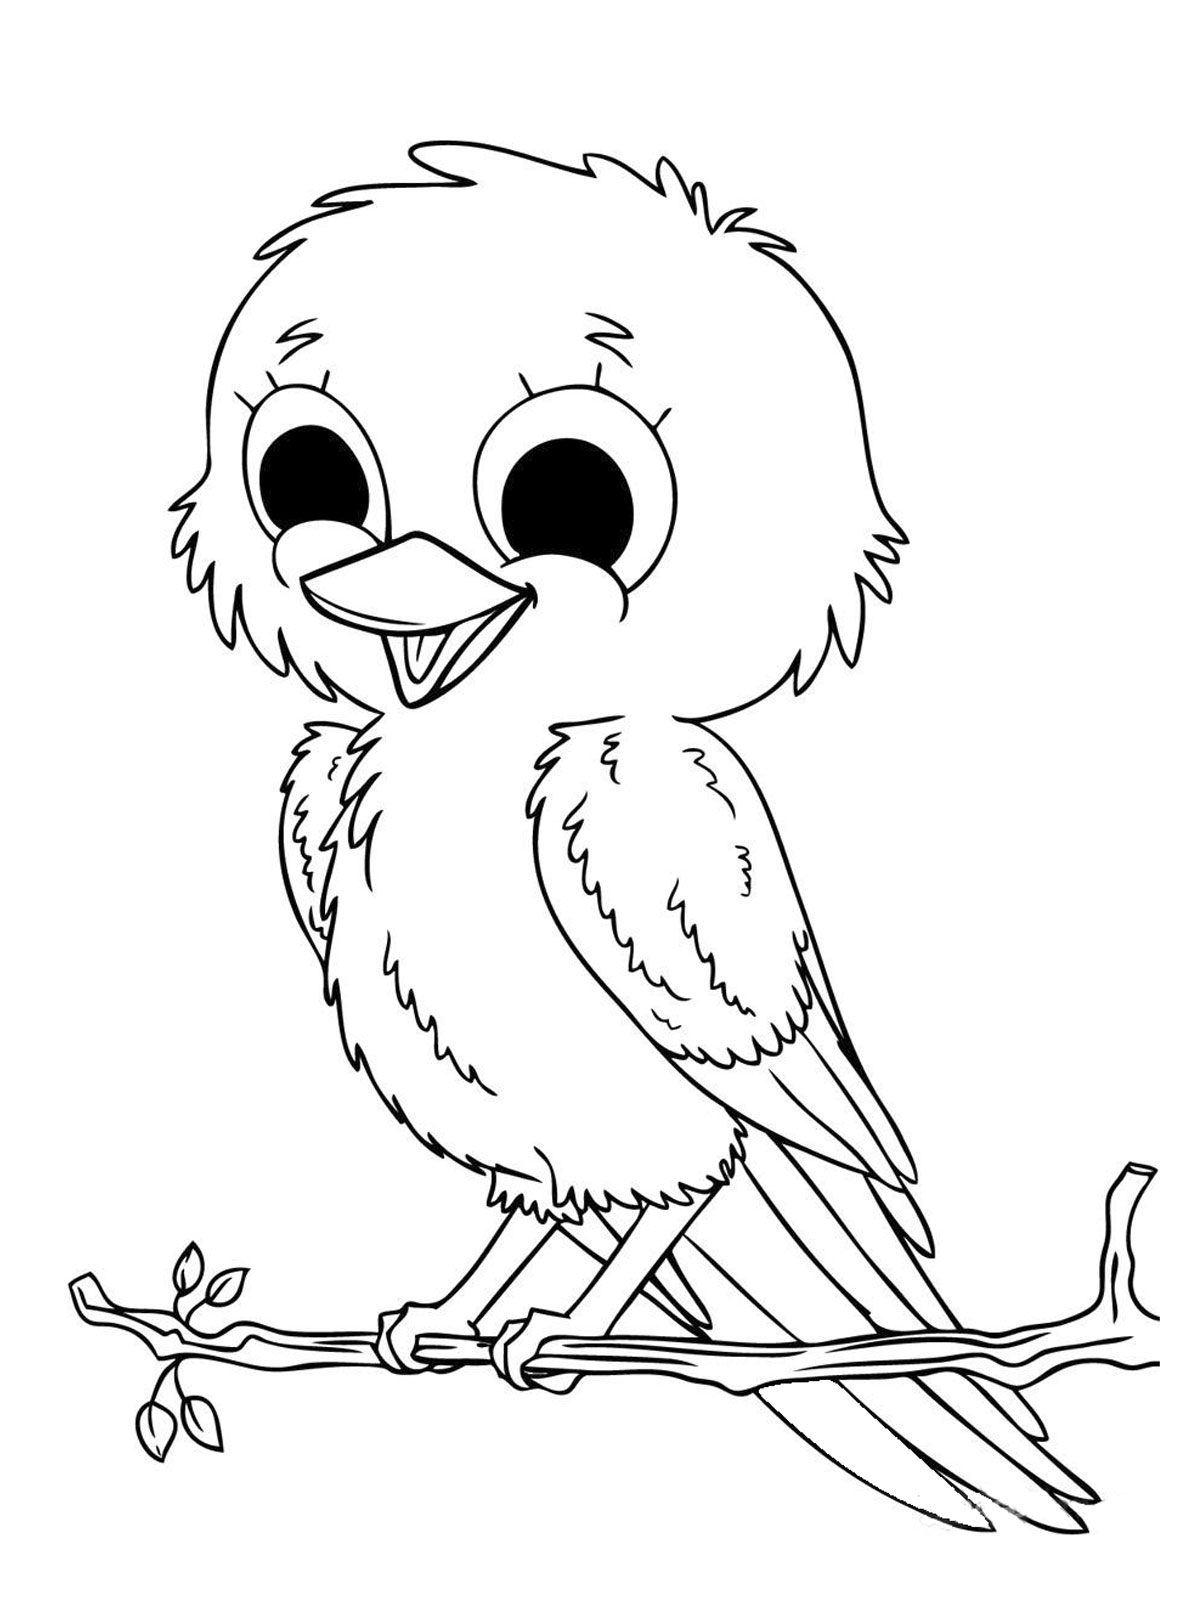 coloring pictures for teenagers coloring pages for girls best coloring pages for kids teenagers coloring pictures for